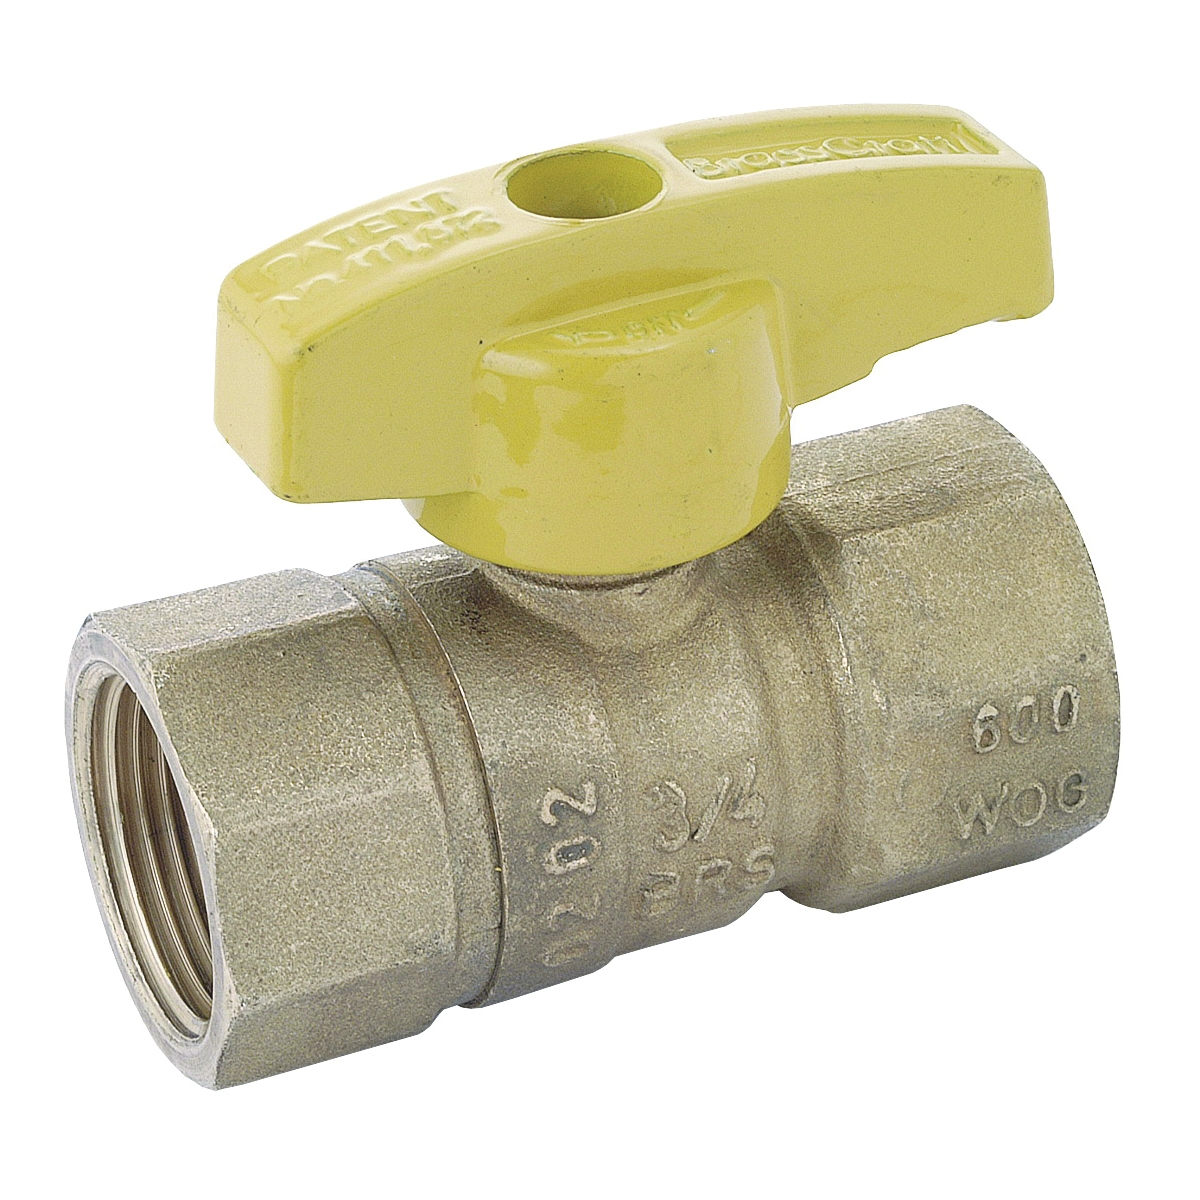 Picture of BrassCraft PSBV503-12 Gas Ball Valve, 3/4 in Connection, Flared, 5 psi Pressure, Brass Body